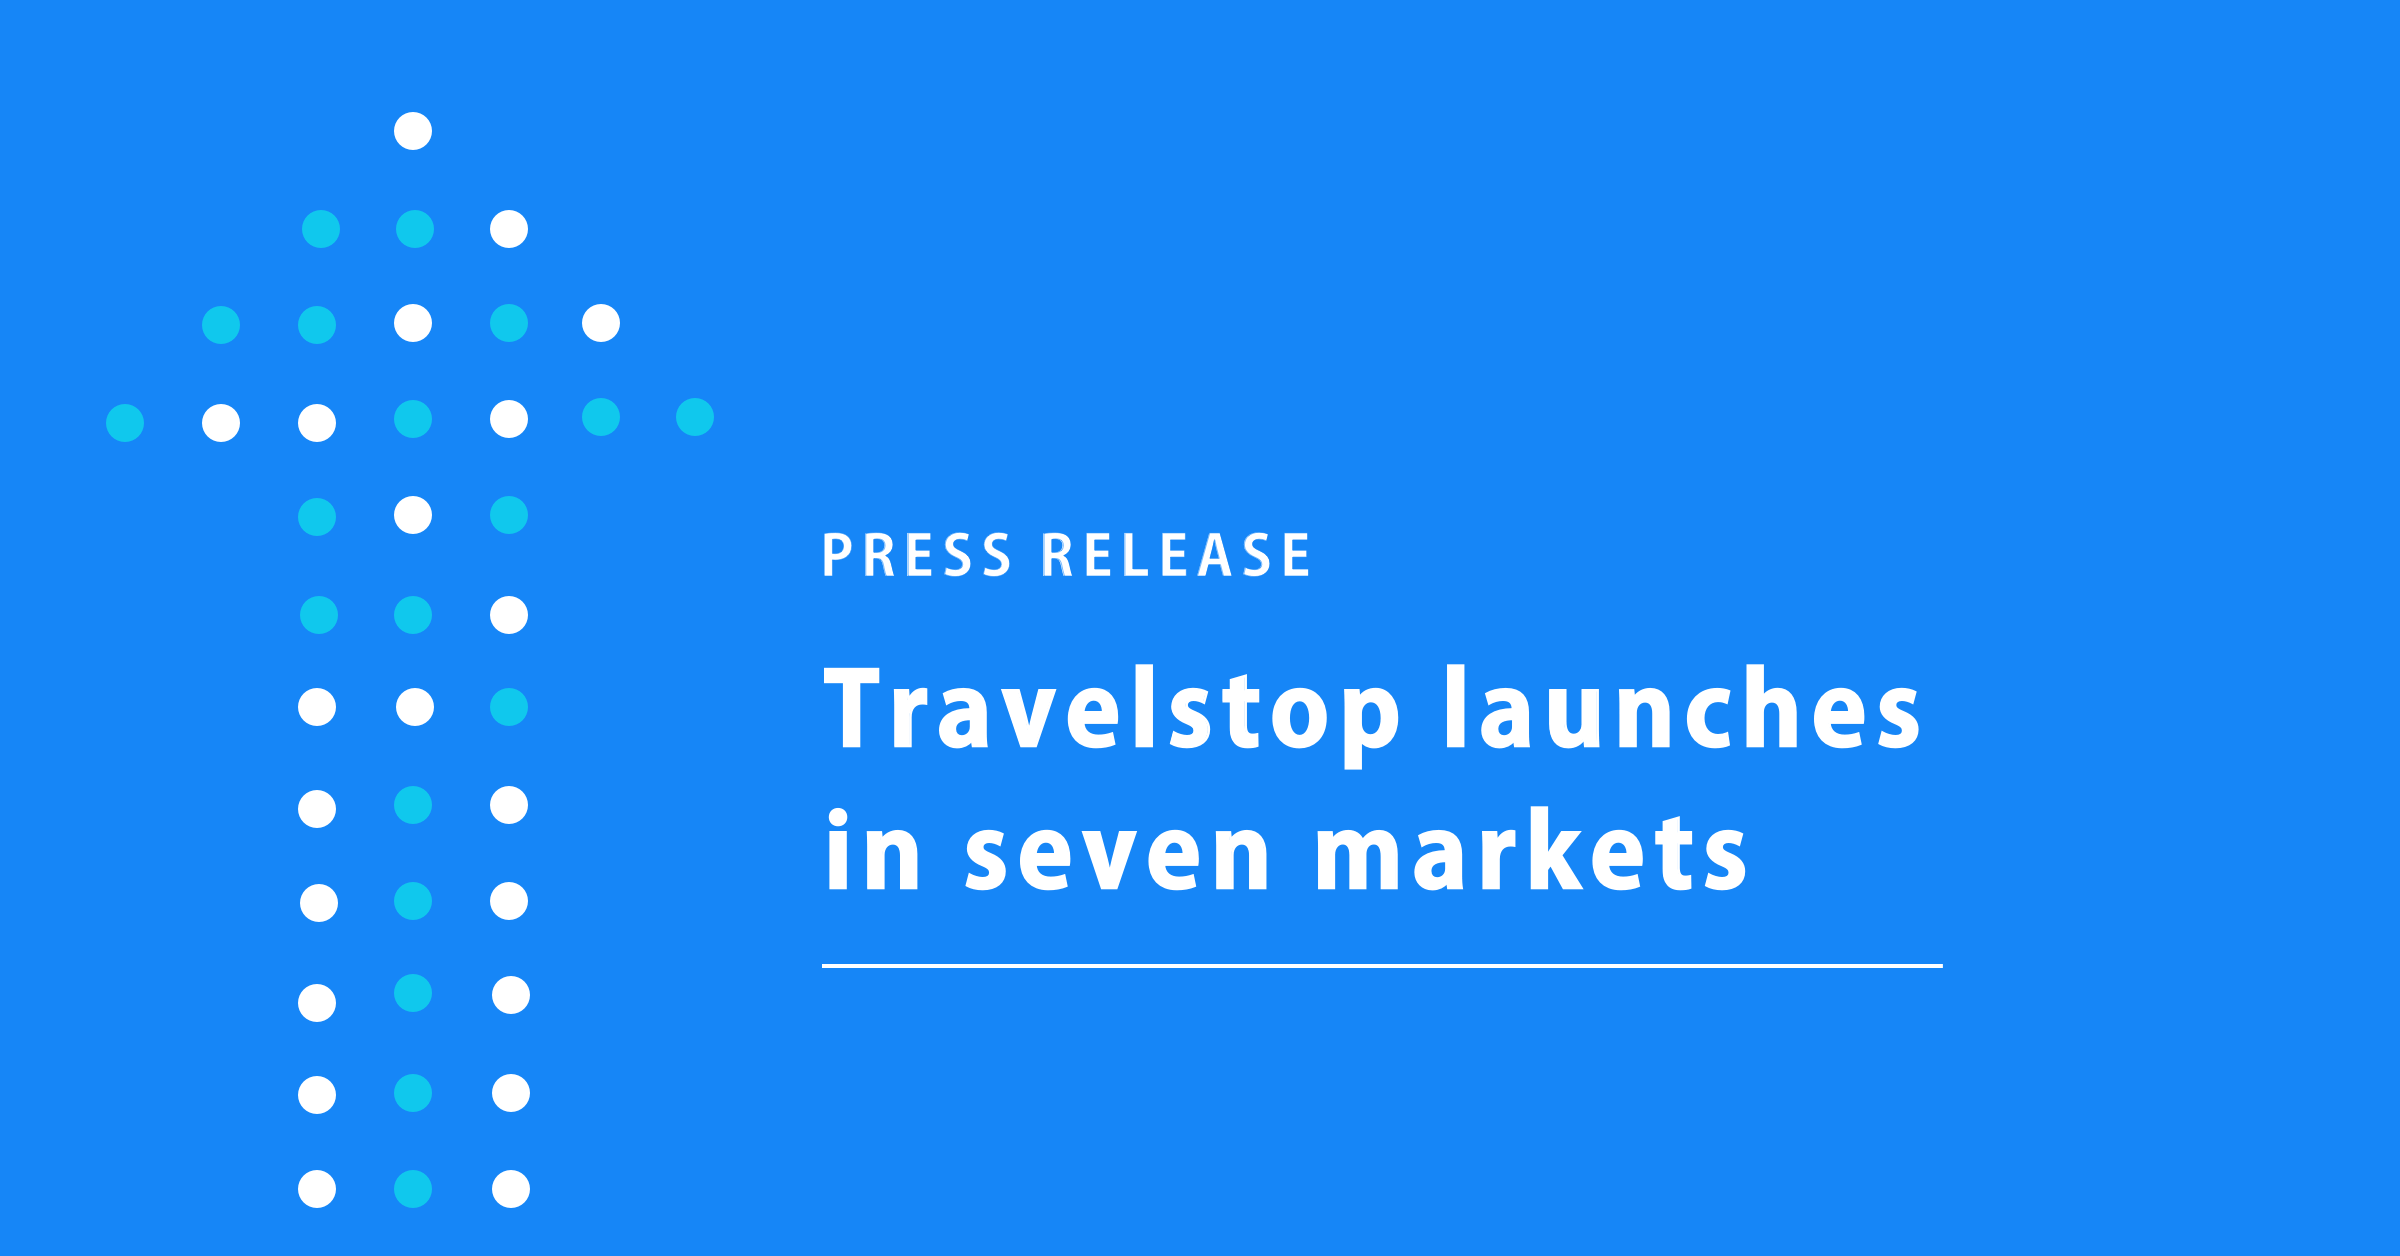 Business travel startup Travelstop strengthens its presence in Asia